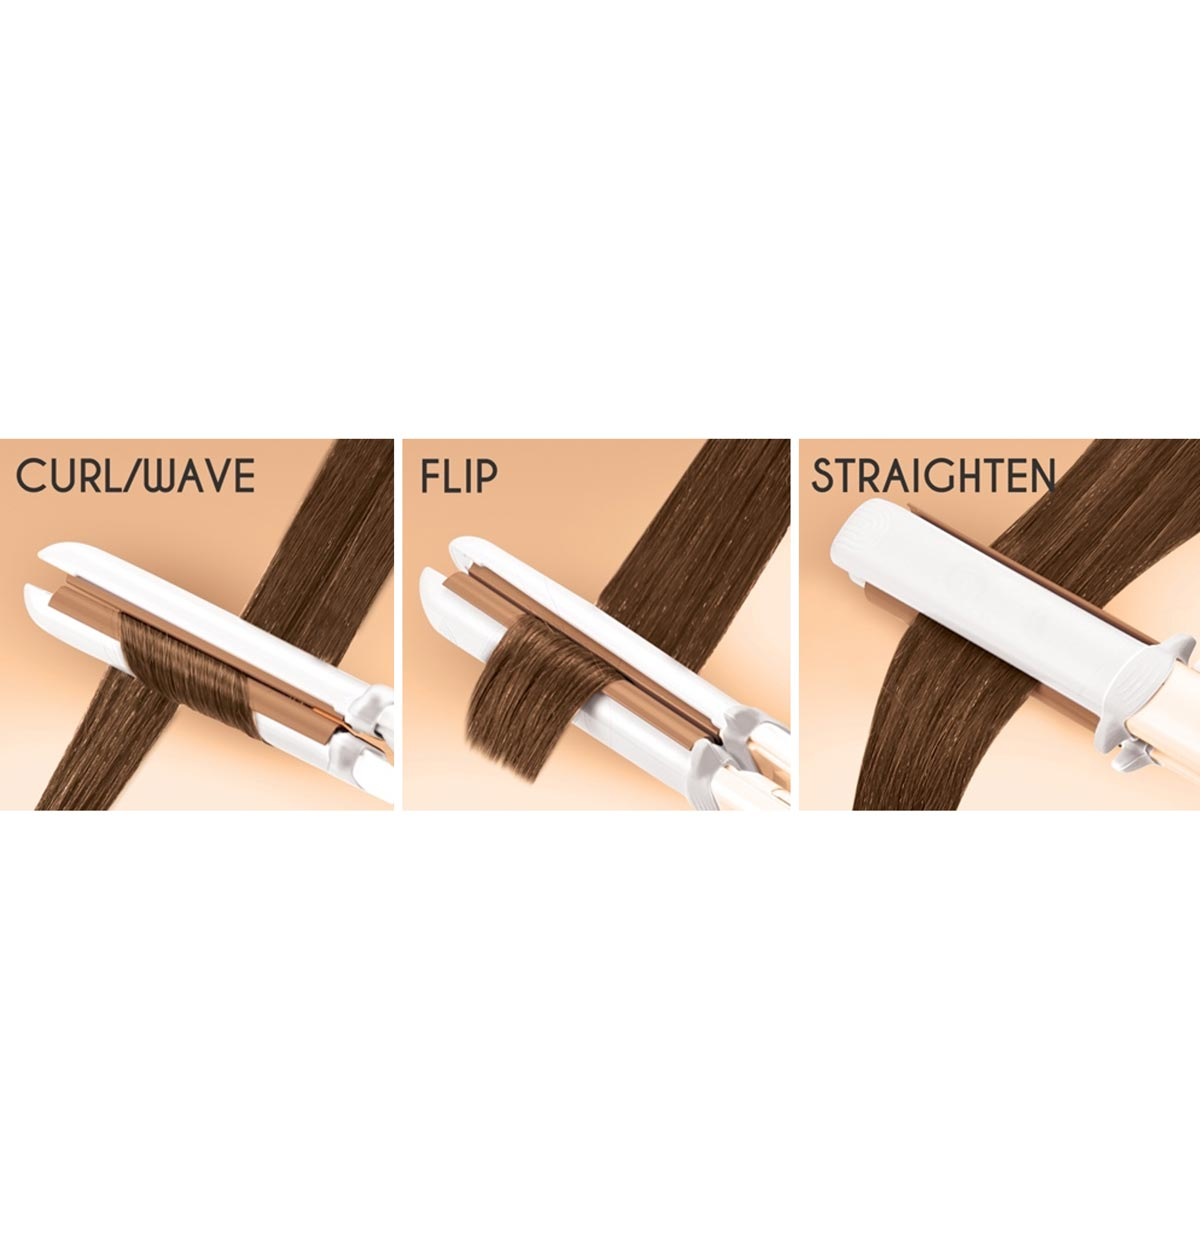 How to use Copperhed Premium Styling Tools